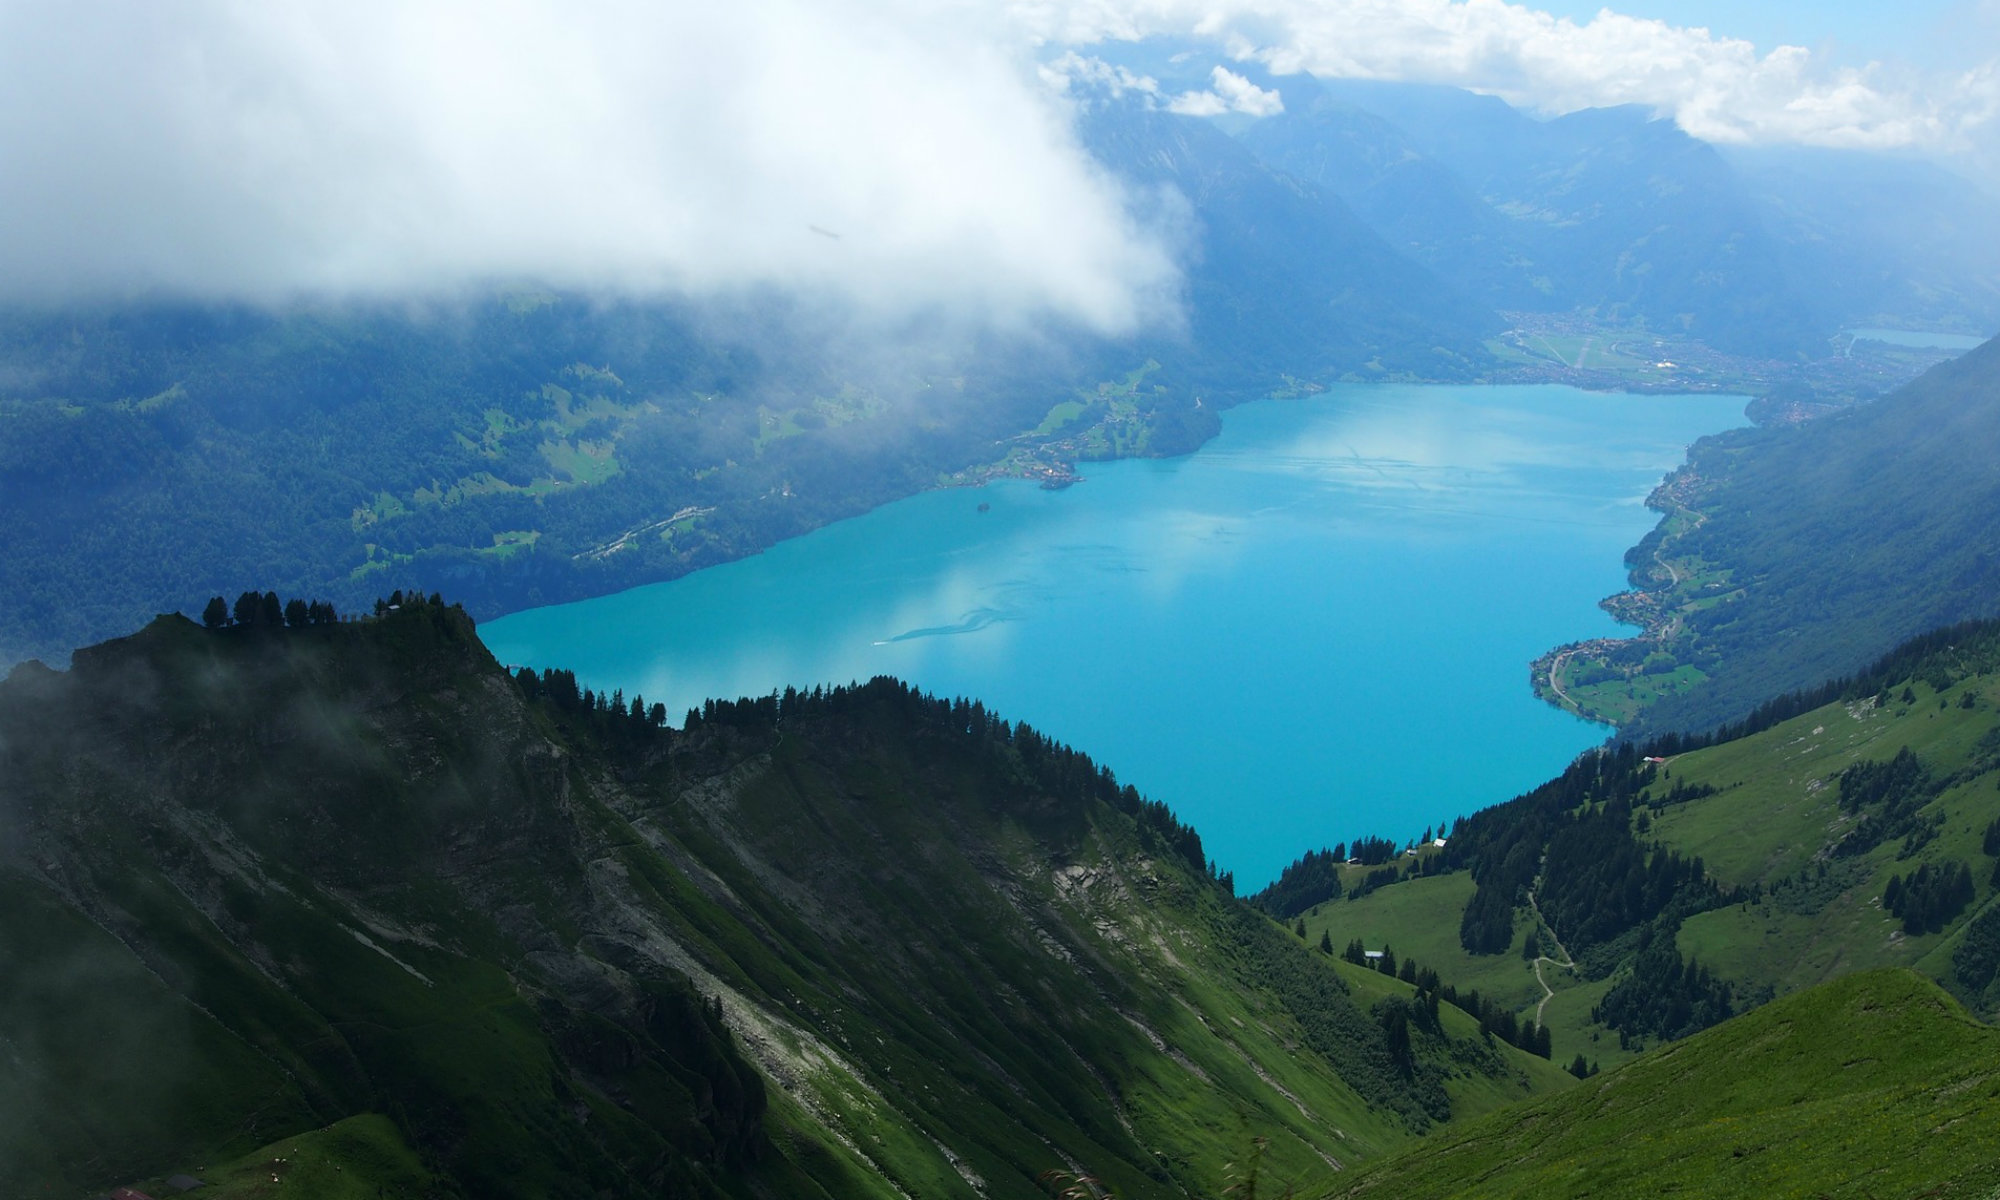 A view of Lake Thun in Switzerland